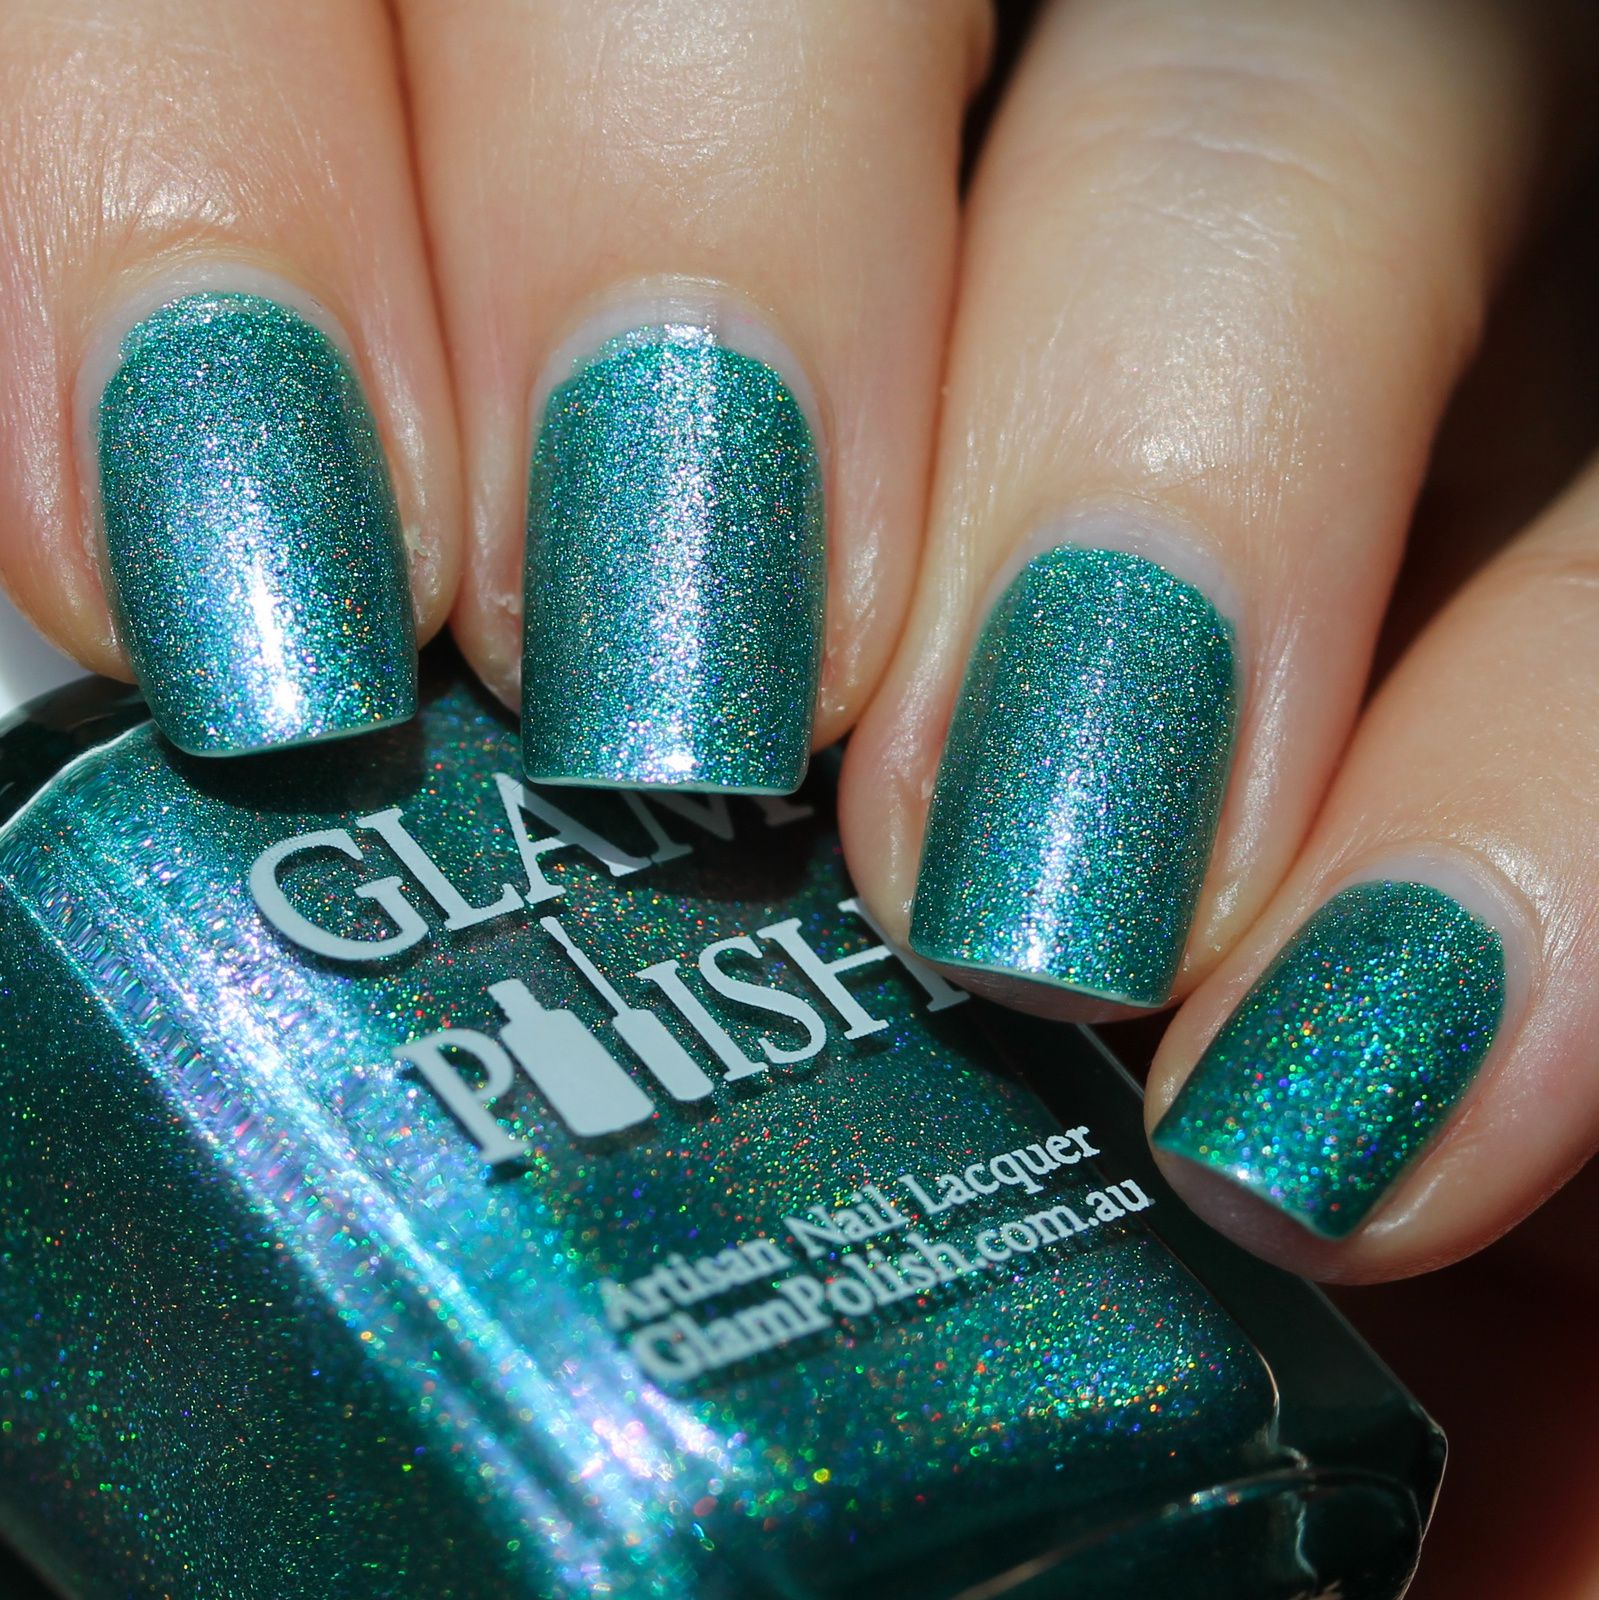 Duri Rejuvacote / Glam Polish Ladies Choice / Sally Hansen Miracle Gel Top Coat